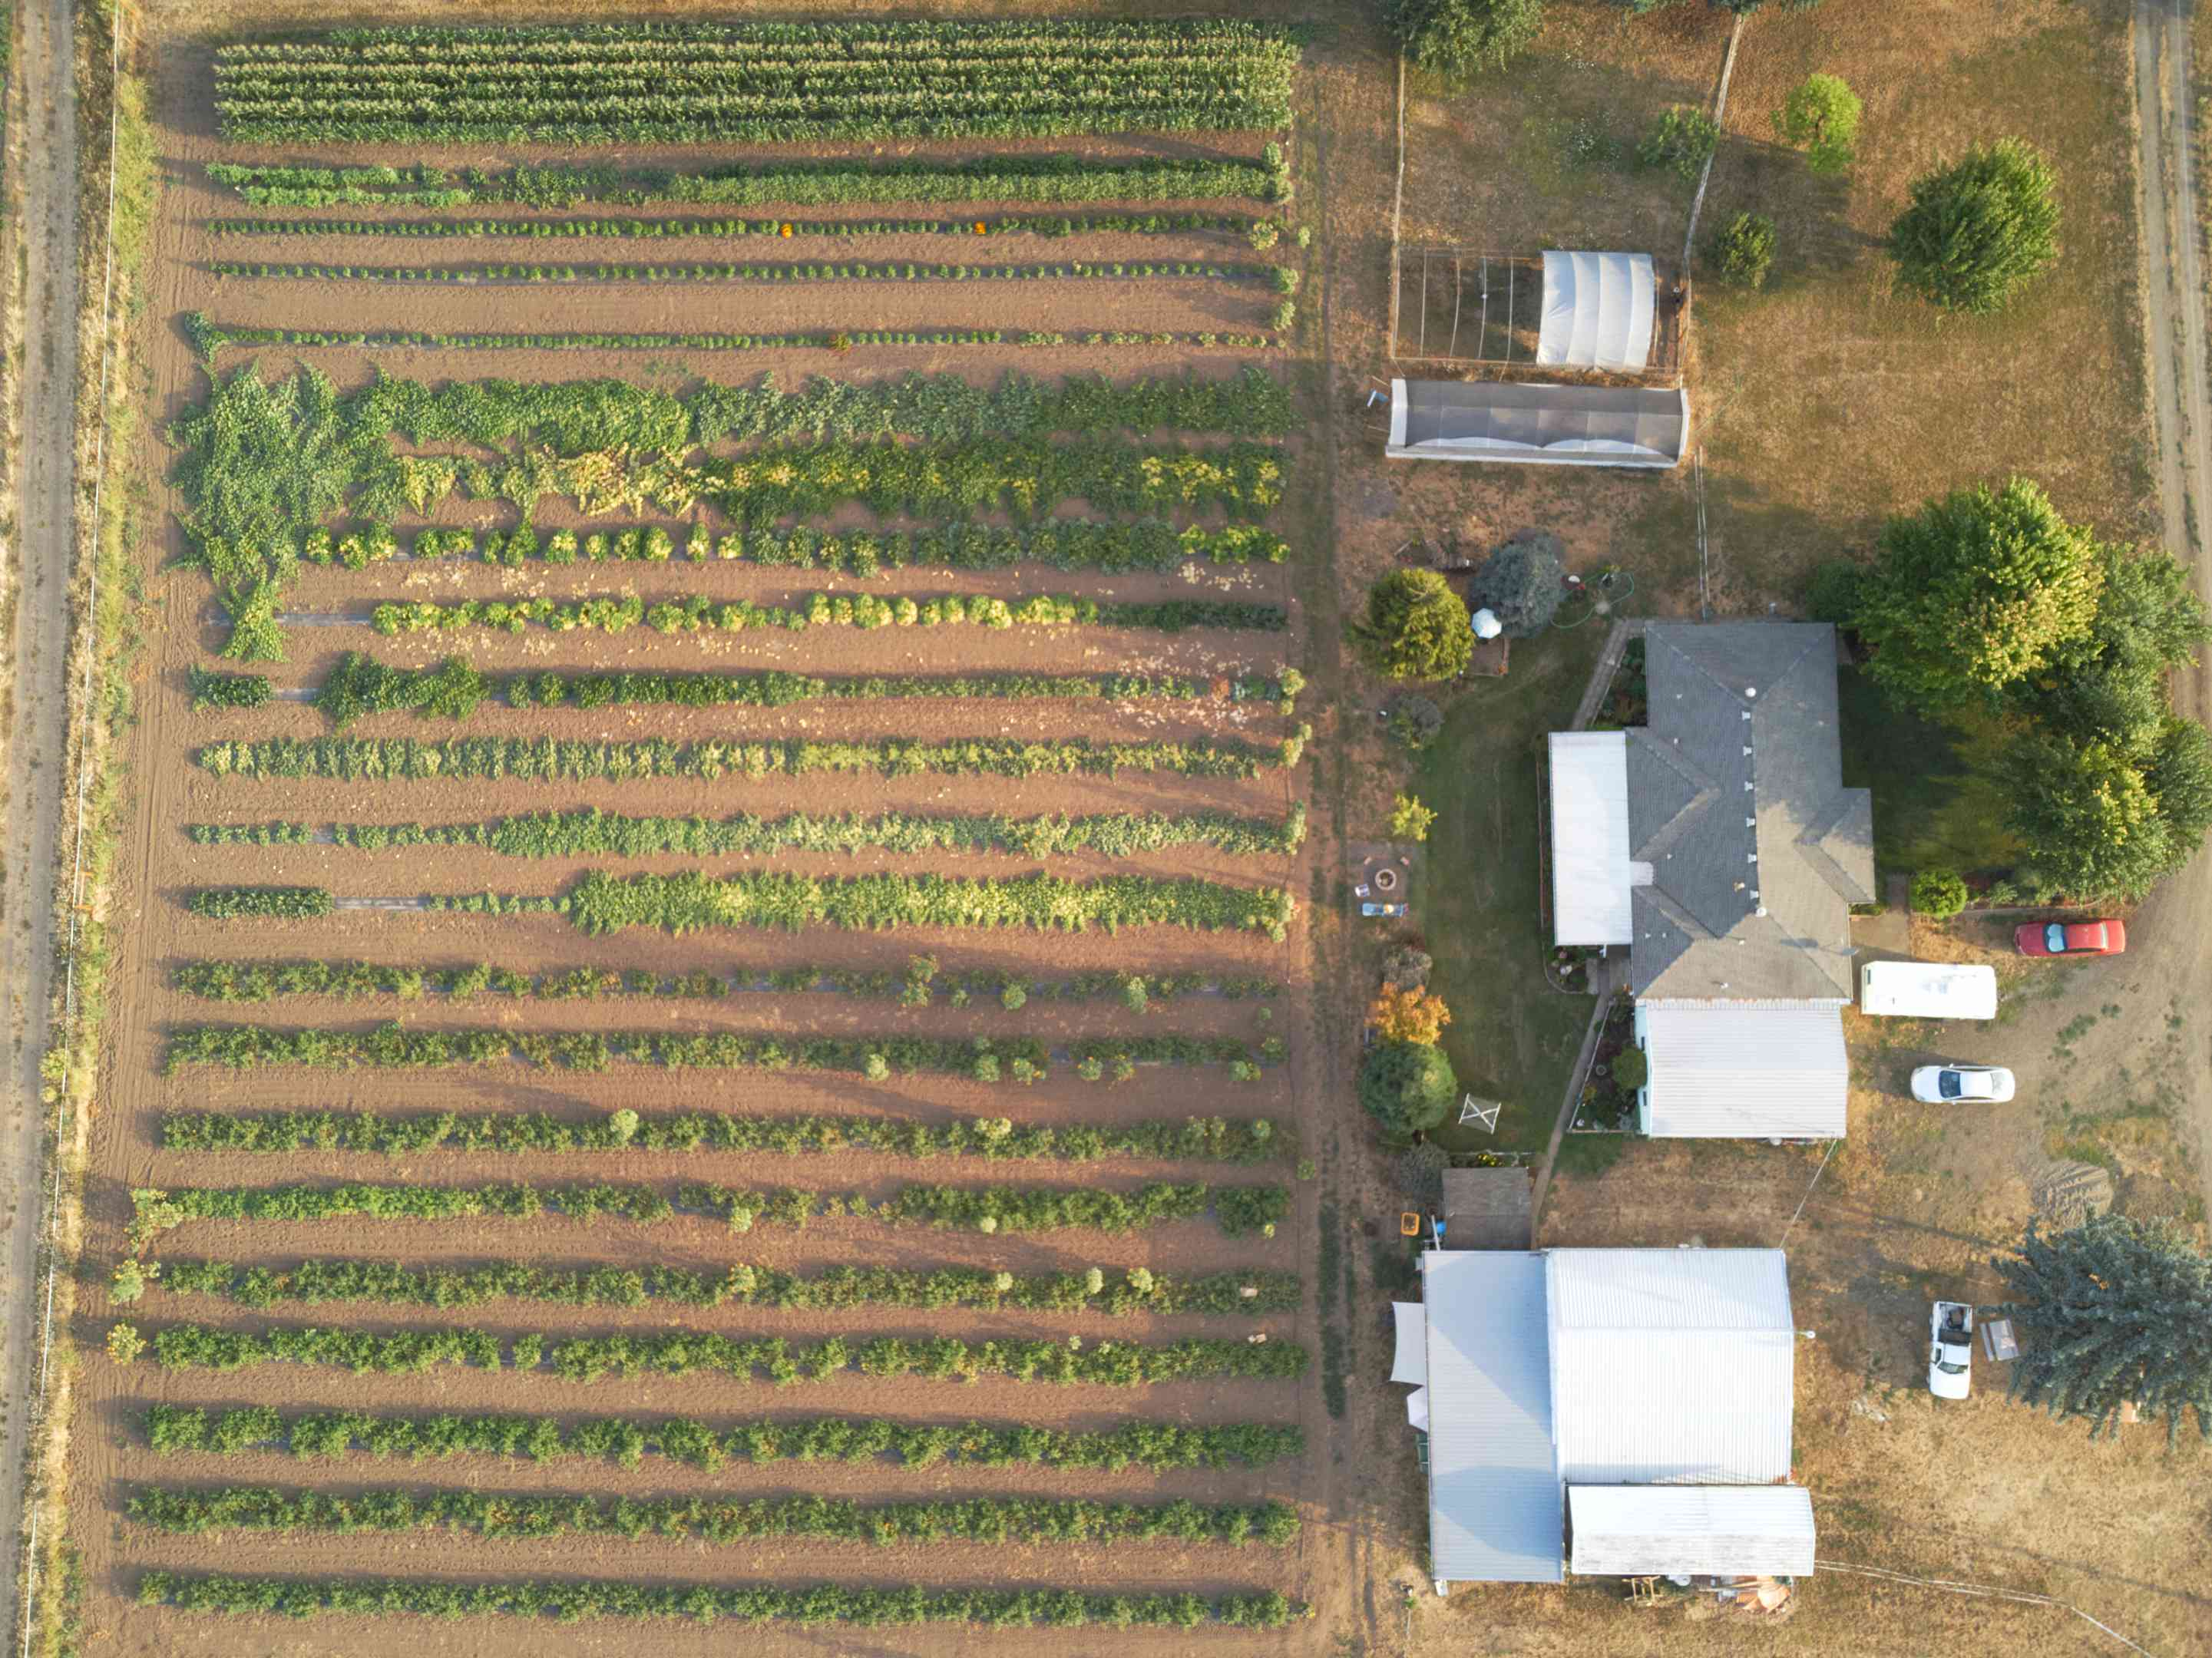 birds eye view of small farm with multiple rows of vegetables planted